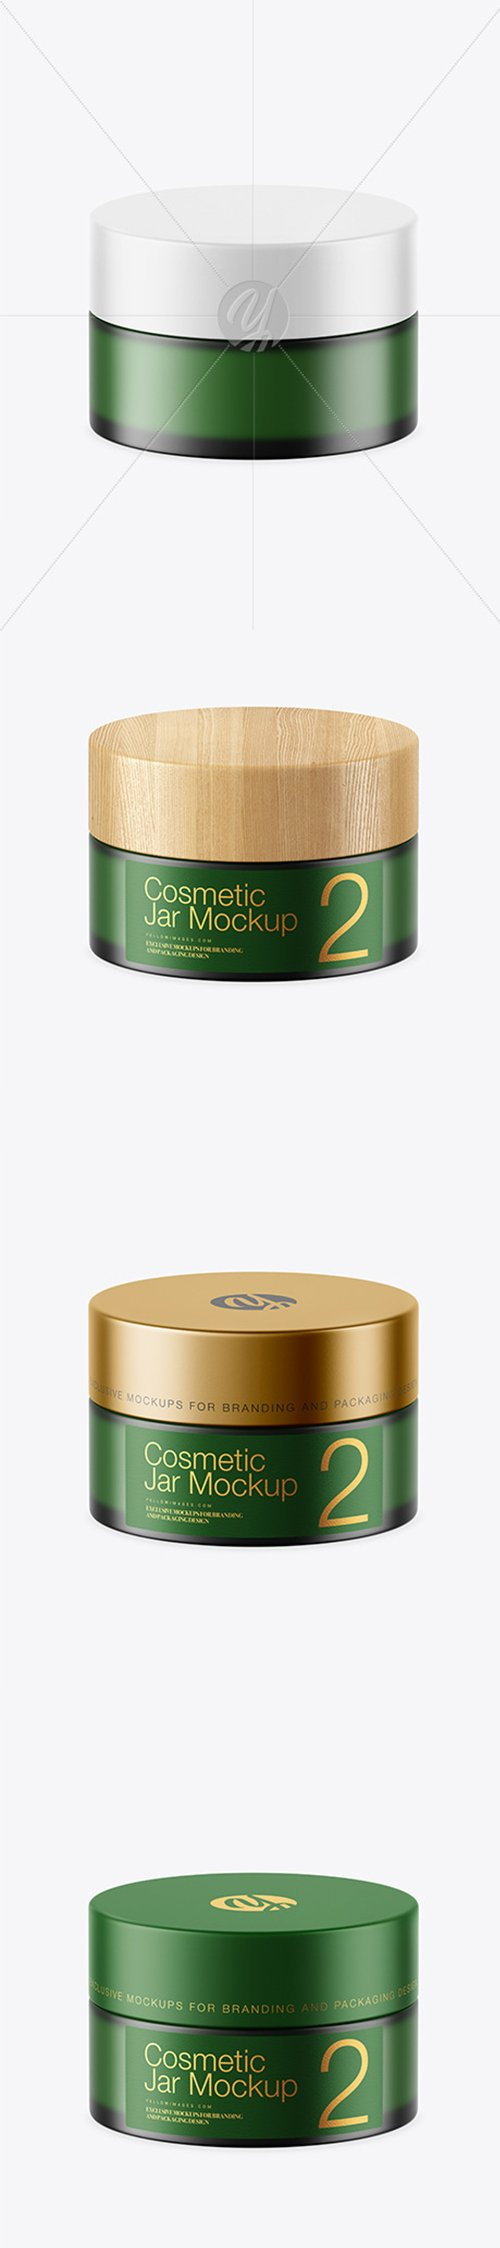 Frosted Green Glass Cosmetic Jar Mockup 45167 TIF